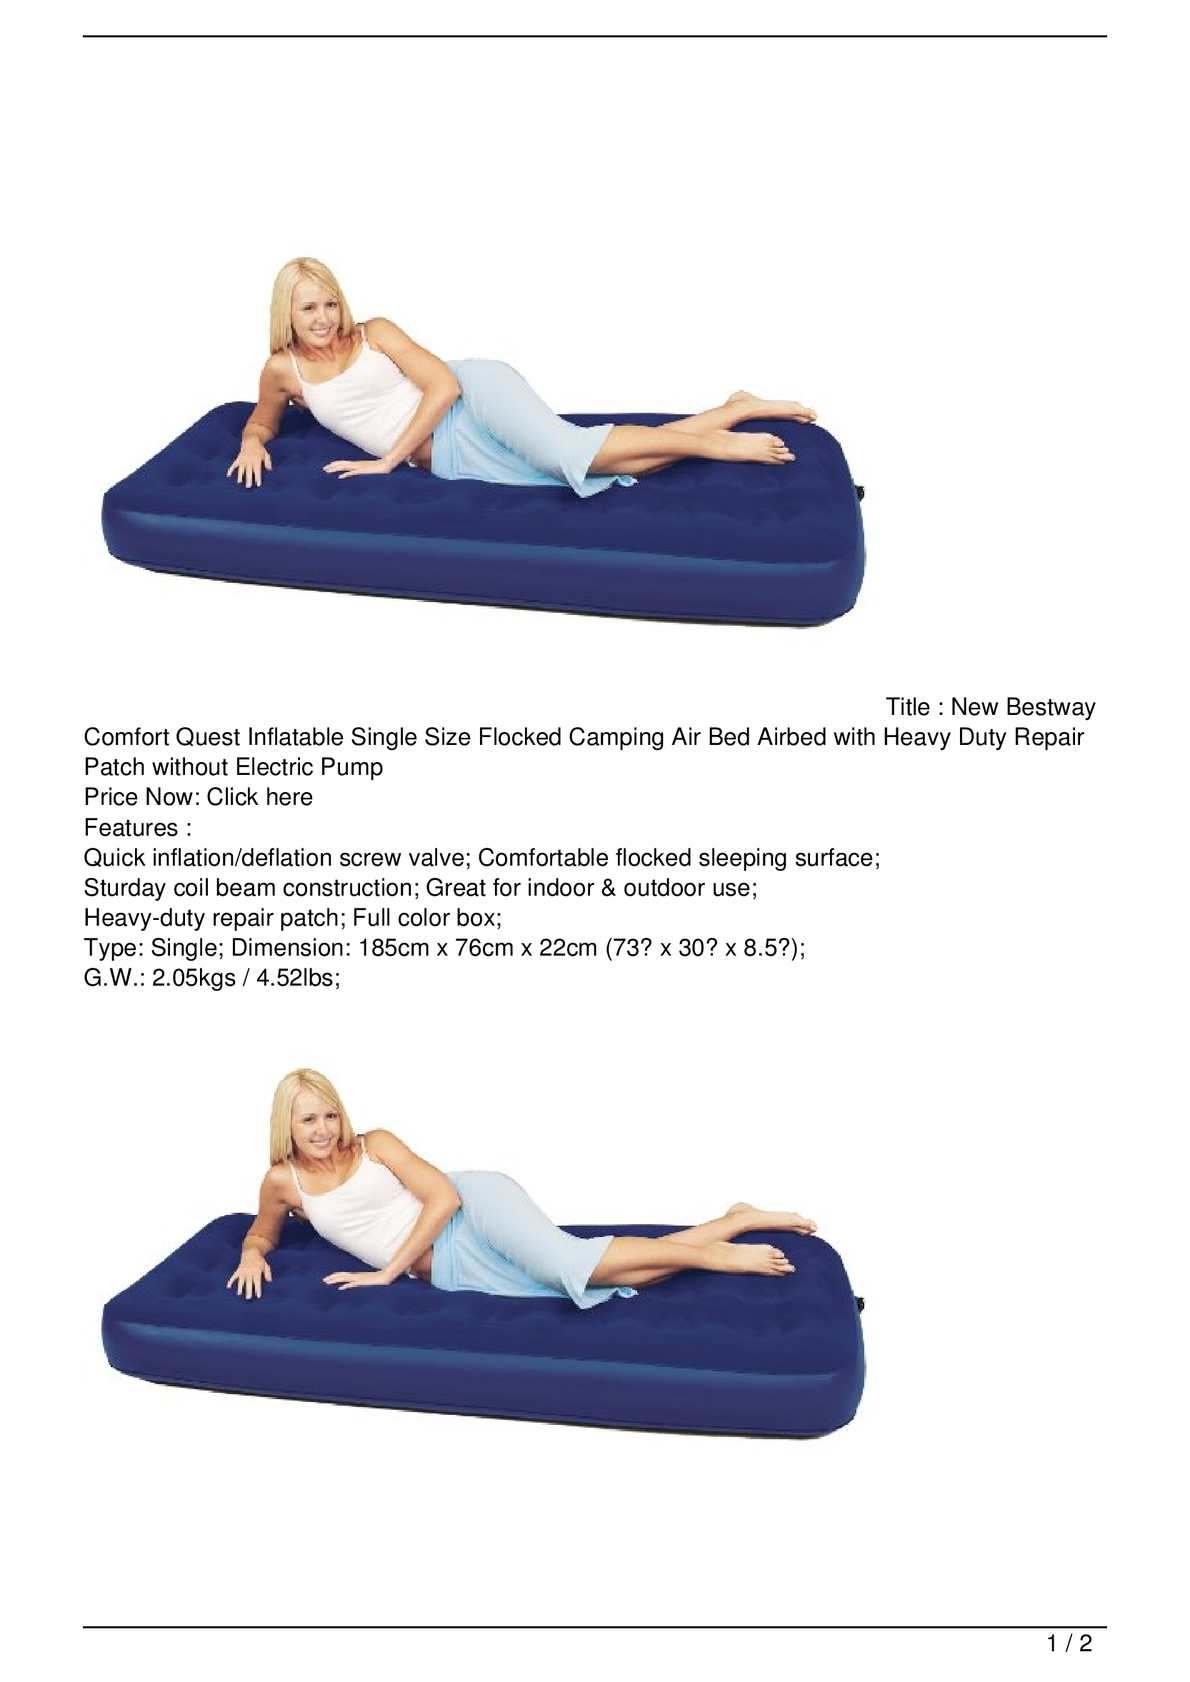 comfort quest inflatable single air bed ideal for camping